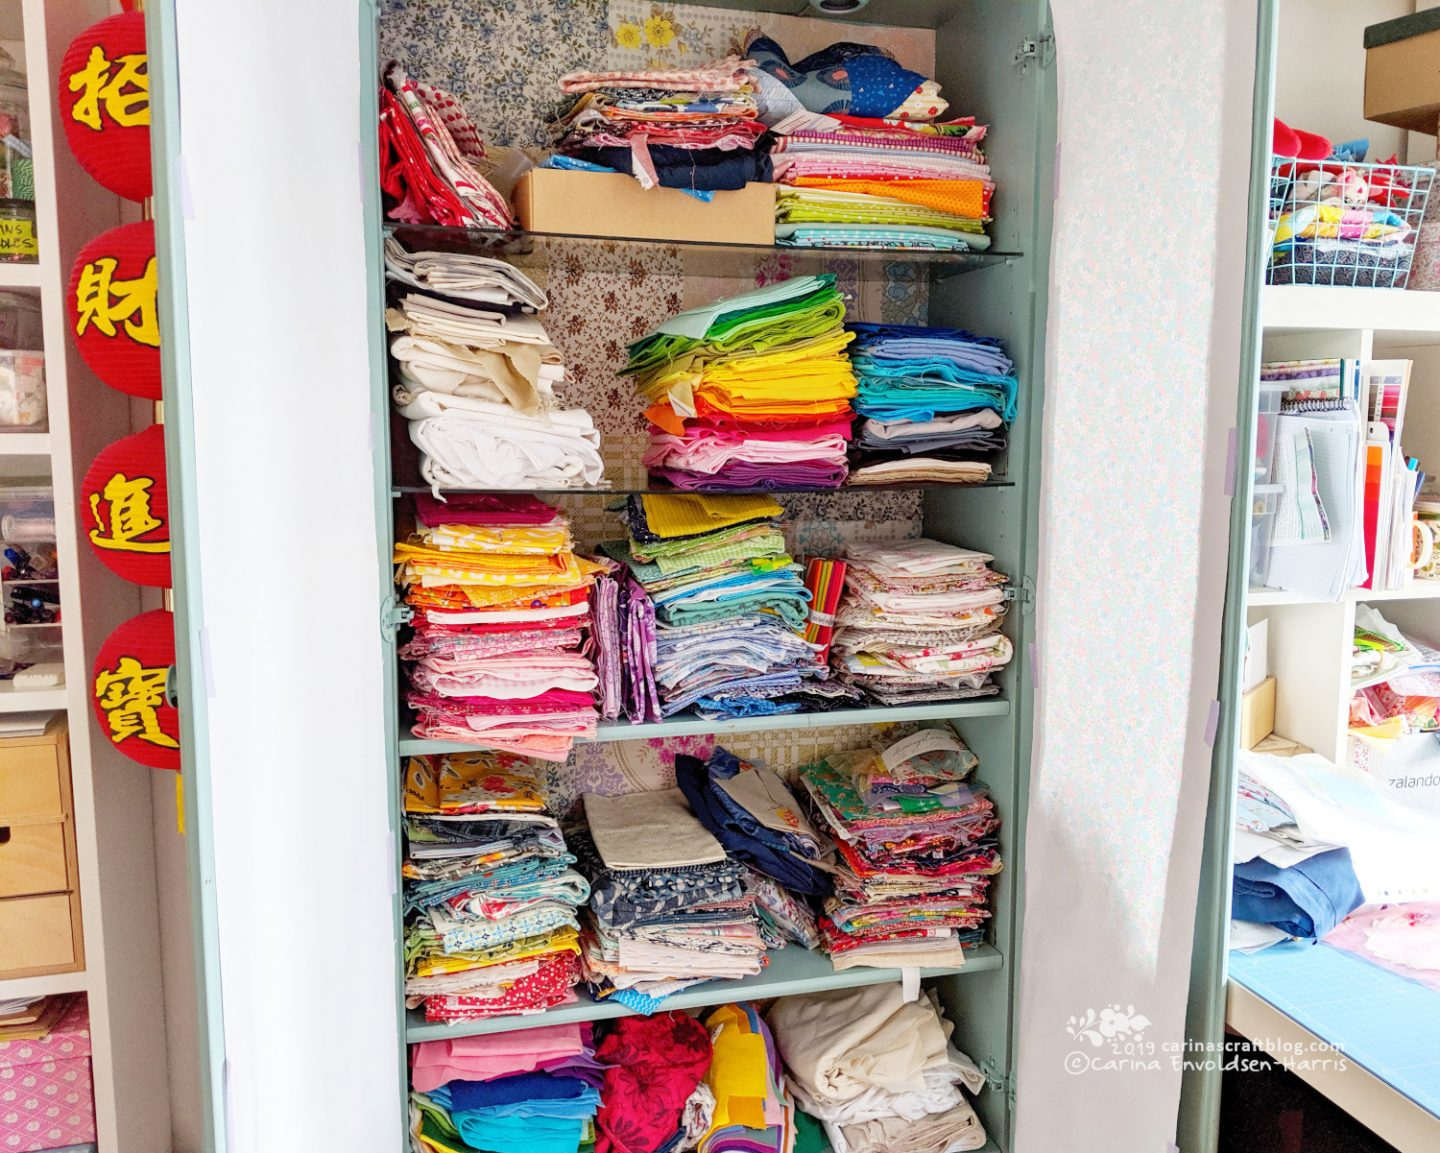 A tall cabinet with glass shelves, doors open so tidy stacks of fabric can be seen.